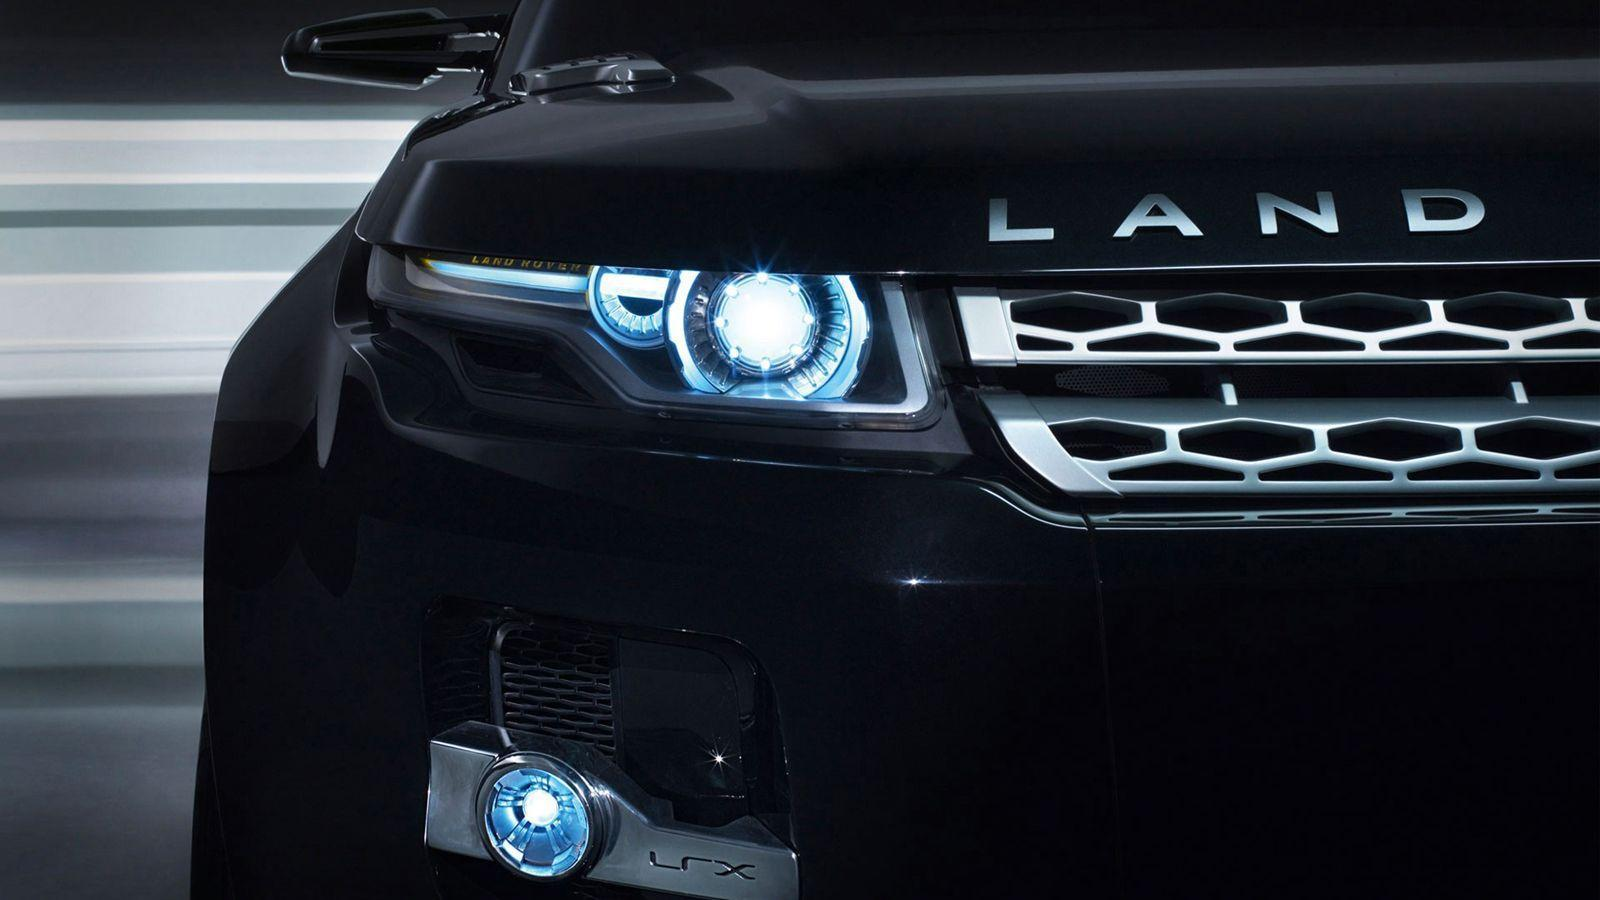 Black Land Rover Front HD Wallpaper | Land Rover | Pinterest ...